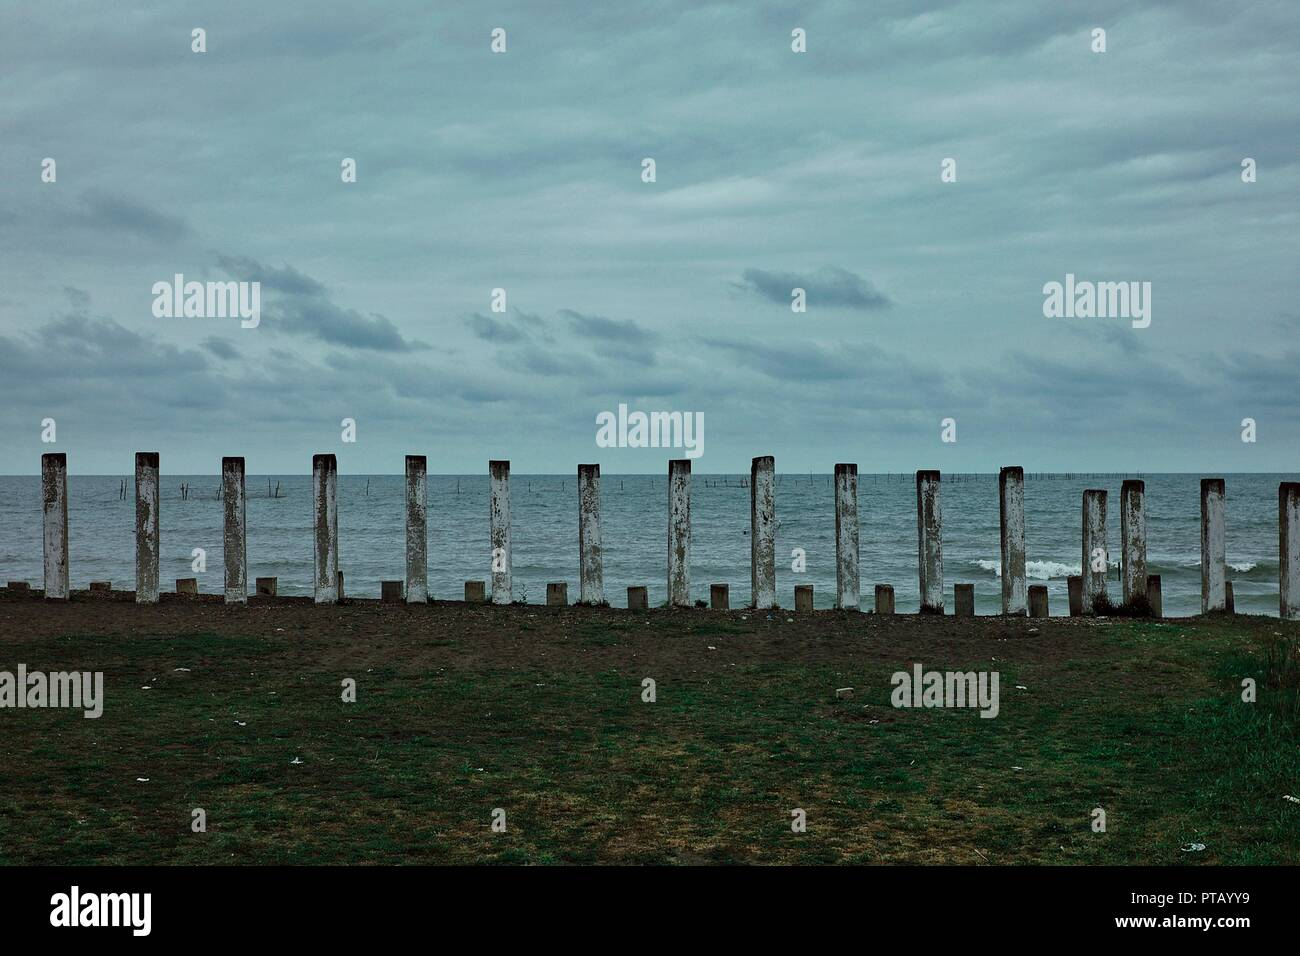 Lankaran, Azerbaijan - APR 18 2011: caspian sea shore with concrete piles and some submerged structure - Stock Image